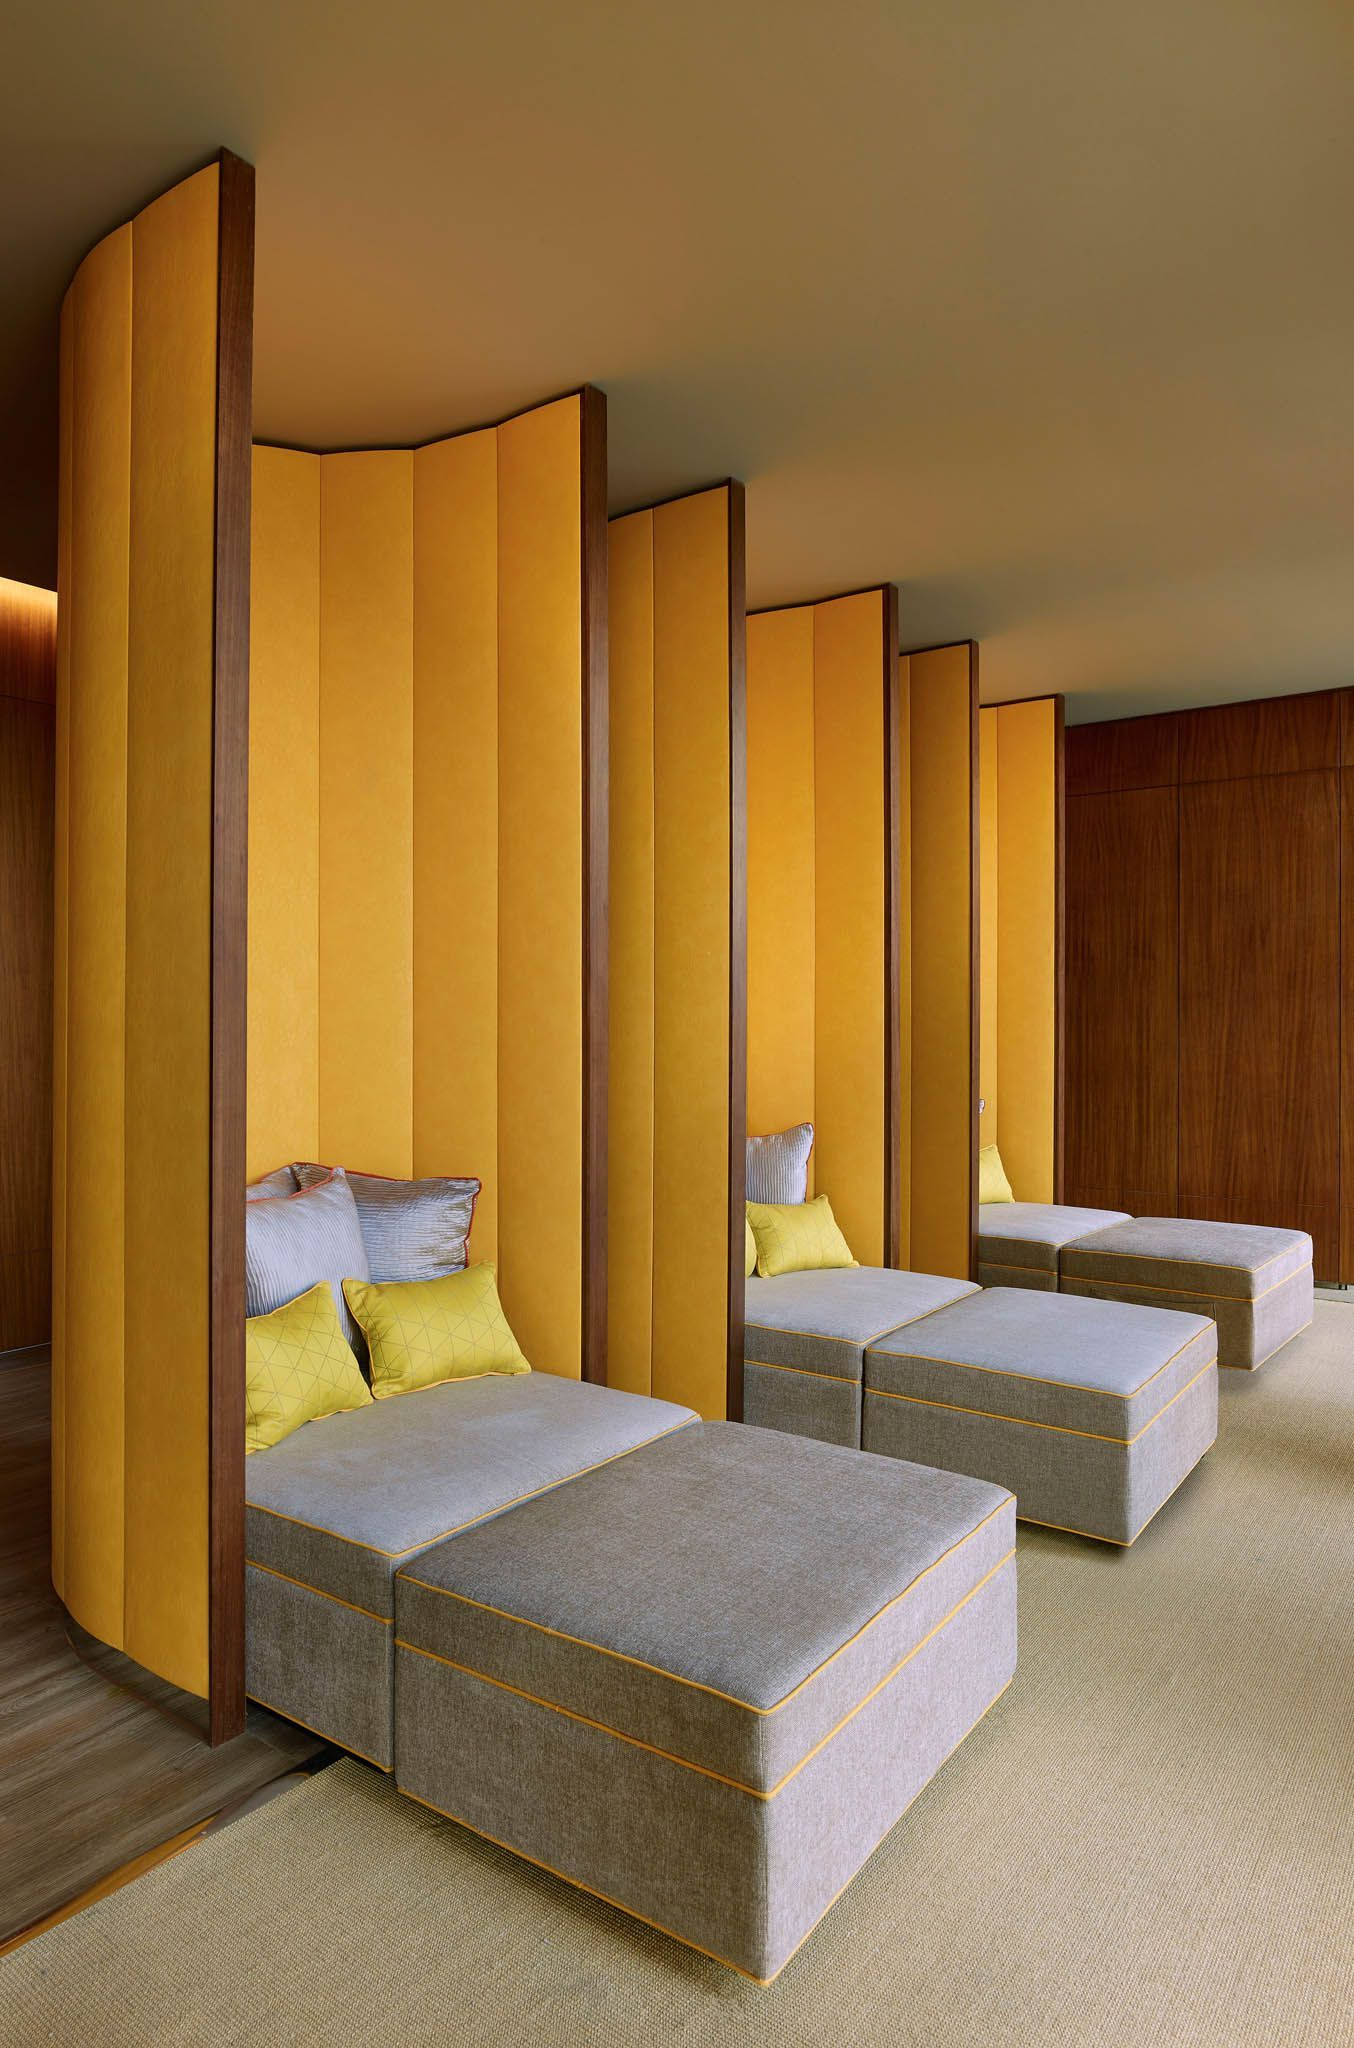 Get Inspiration For Your Work In Progress A New Hotel Decor